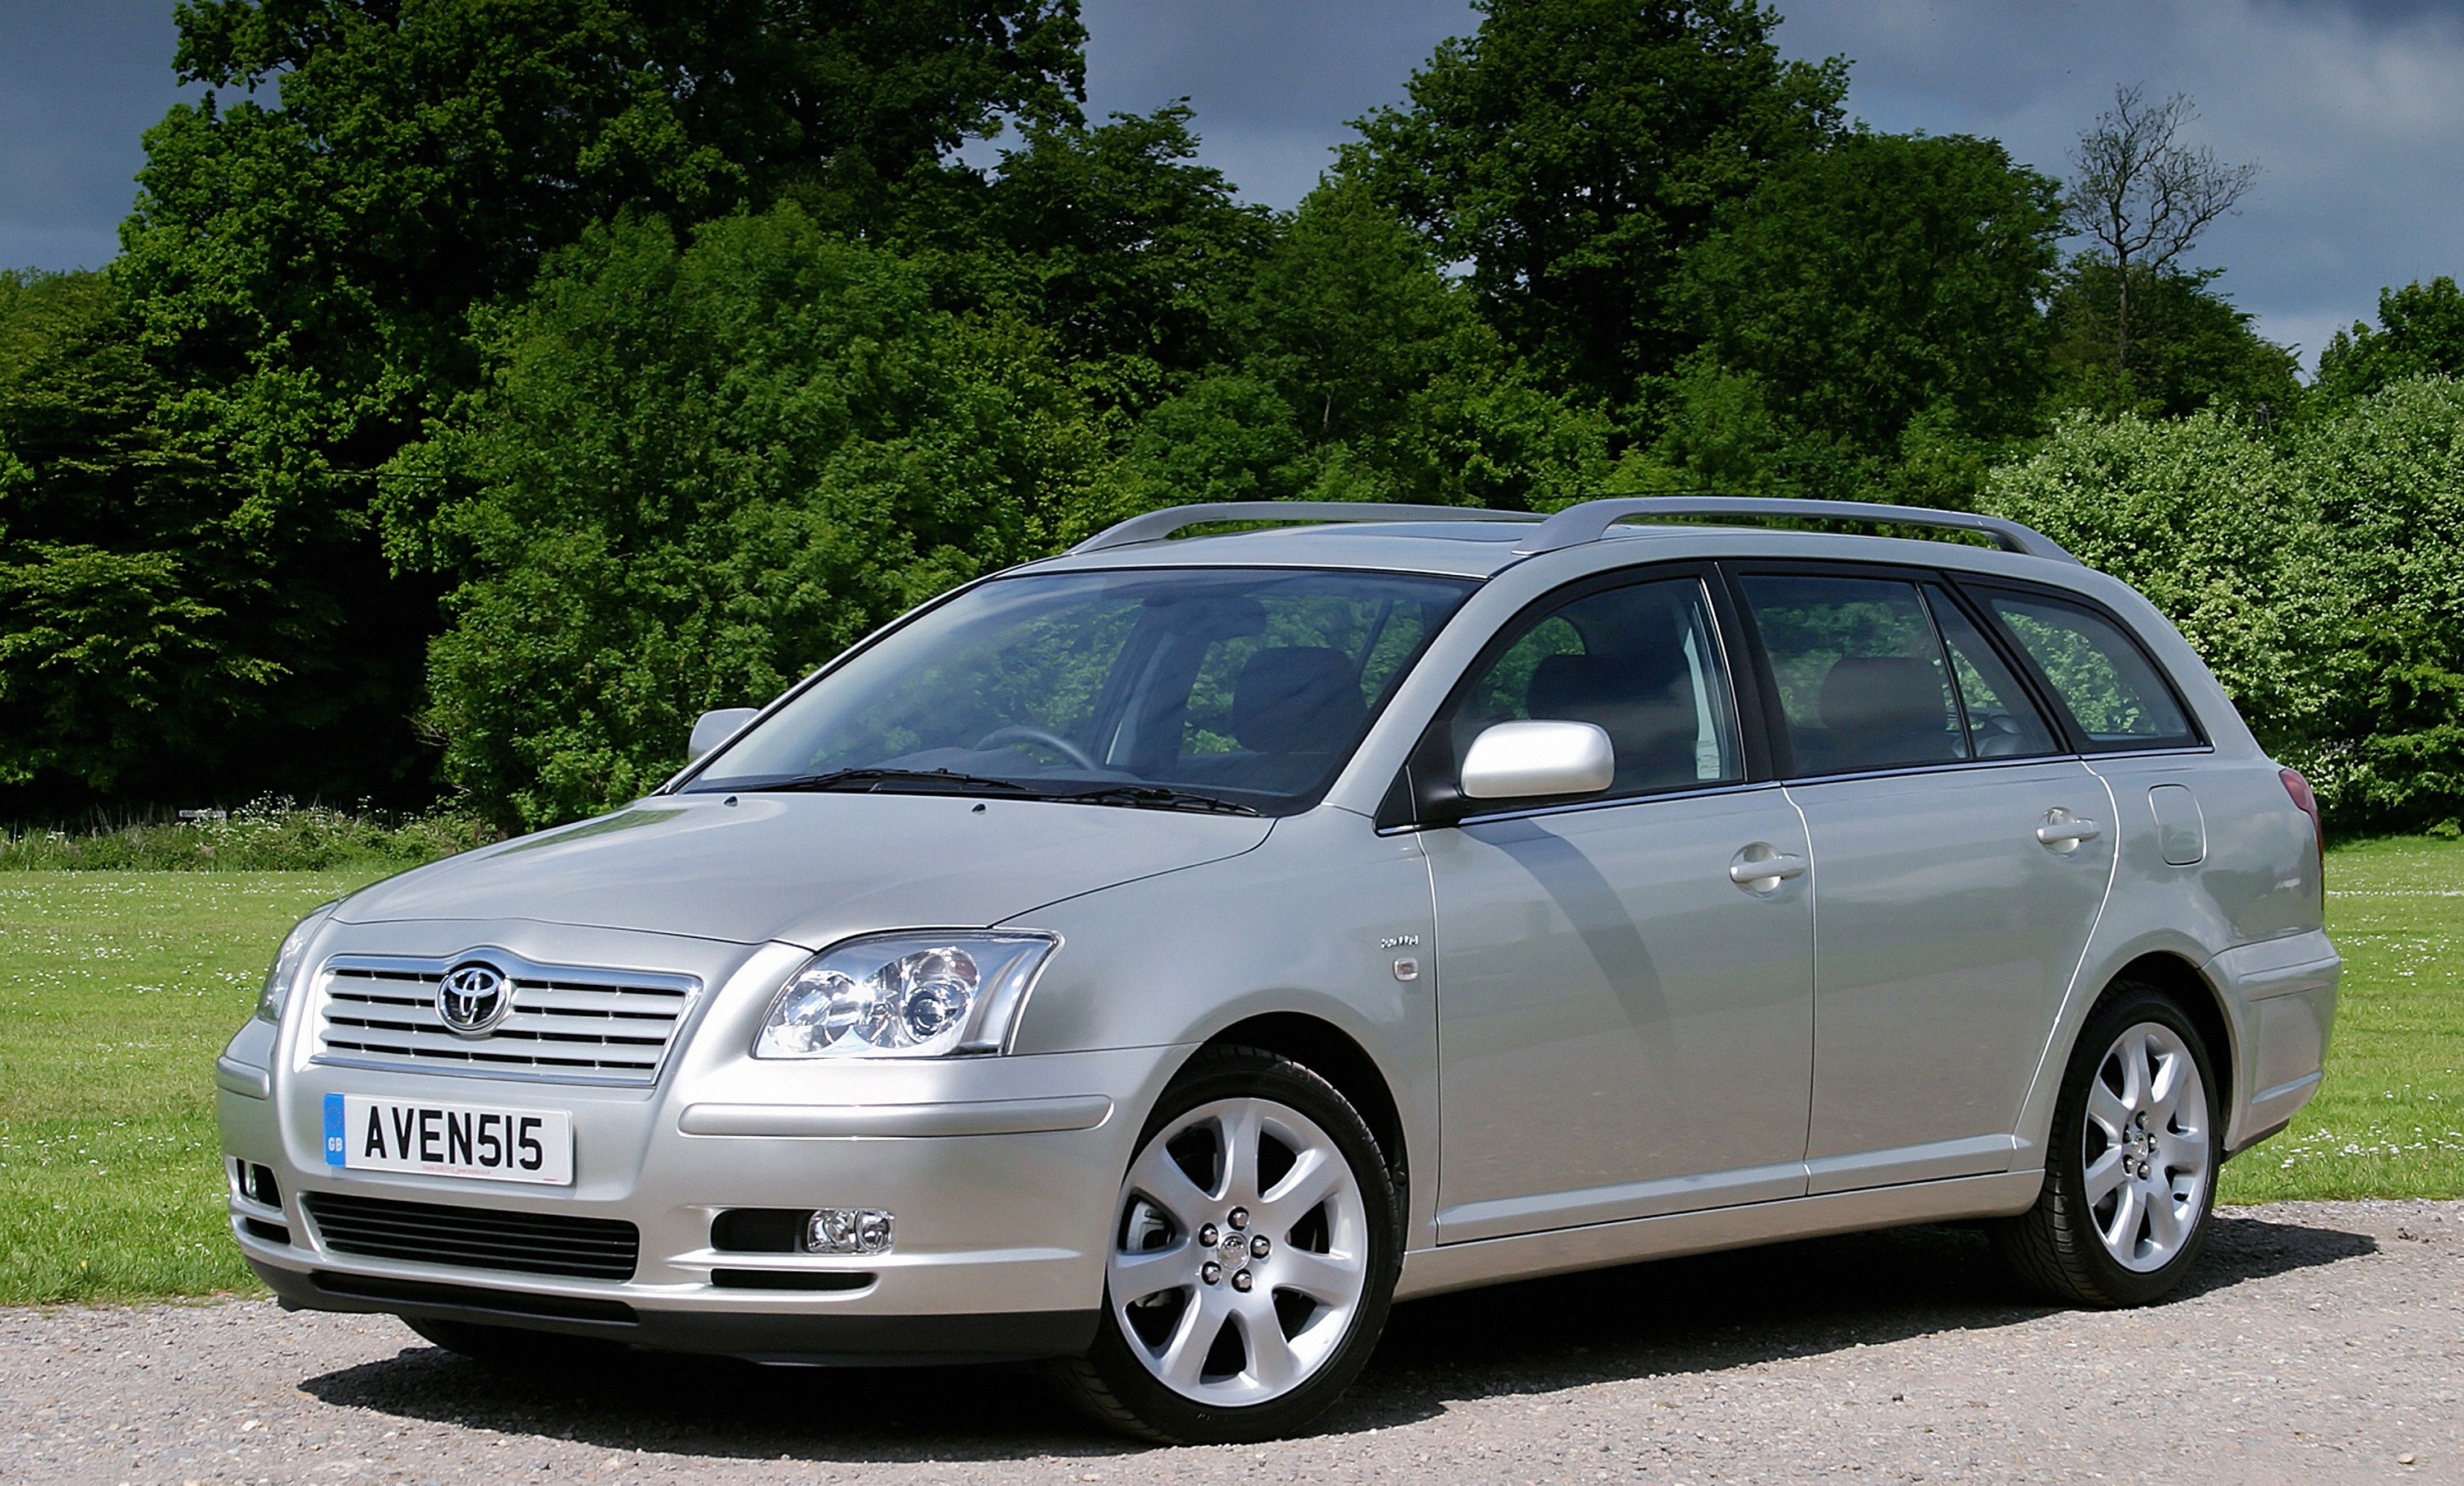 toyota avensis wagon specs 2006 2007 2008 autoevolution. Black Bedroom Furniture Sets. Home Design Ideas